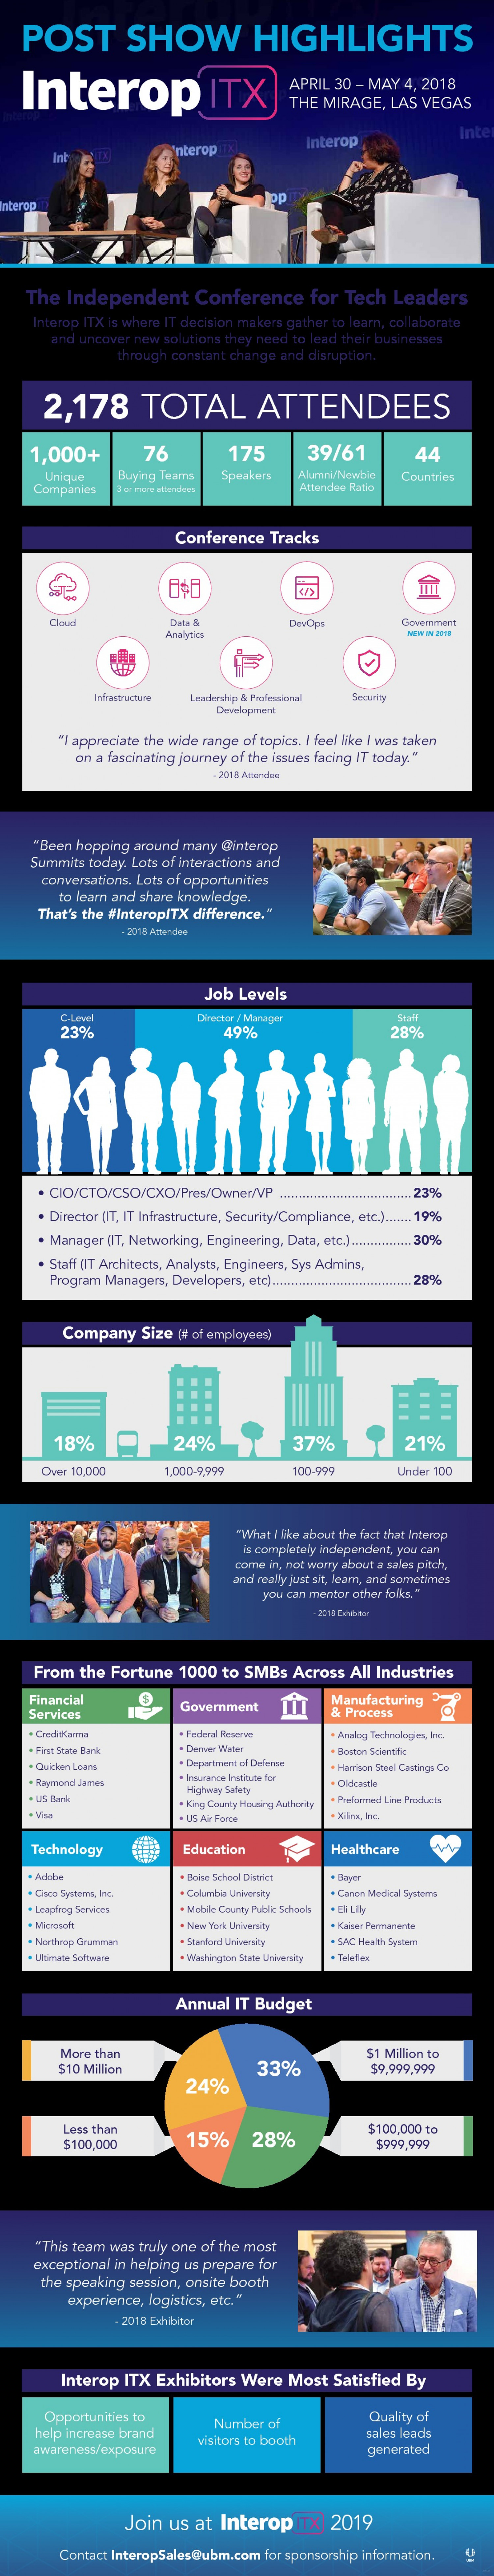 Interop ITX 2018 Audience Highlights Infographic